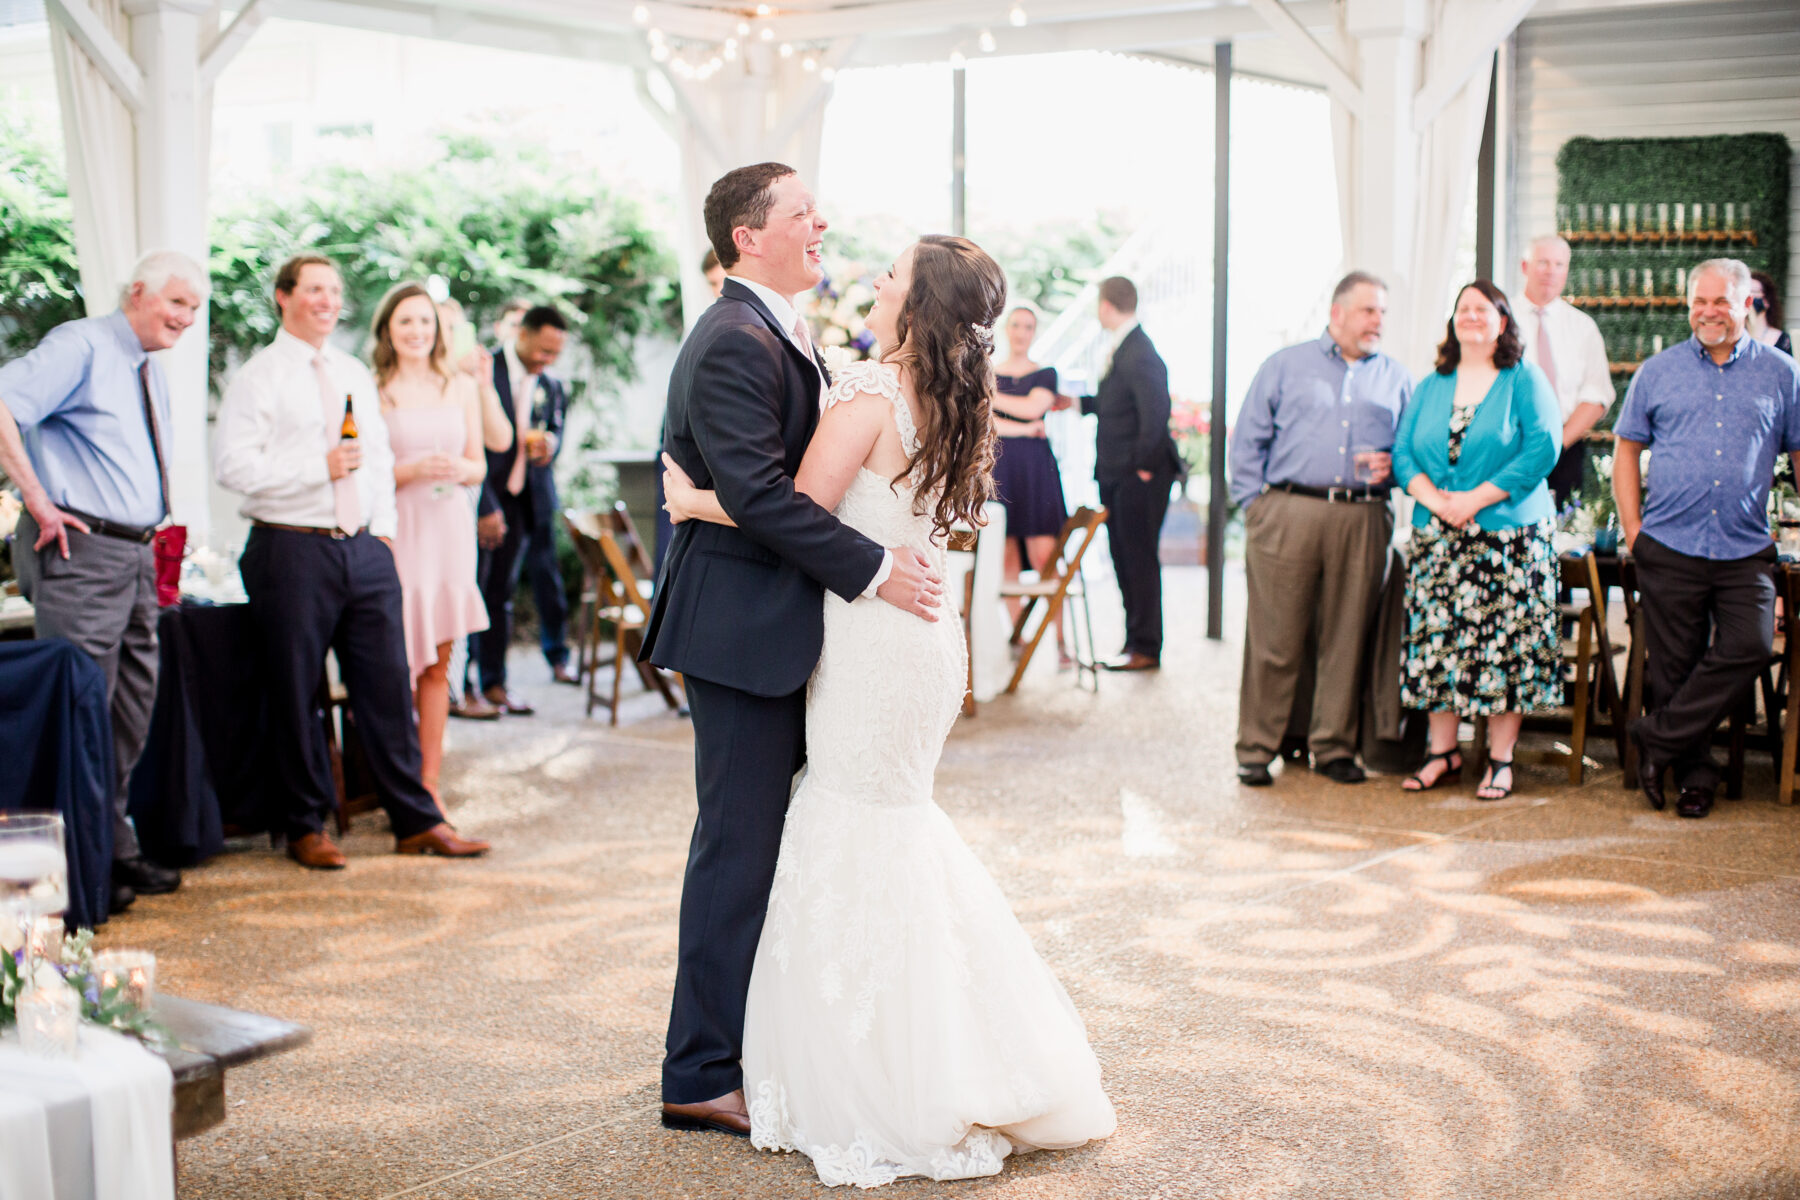 Wedding first dance at CJ's Off the Square   Nashville Bride Guide